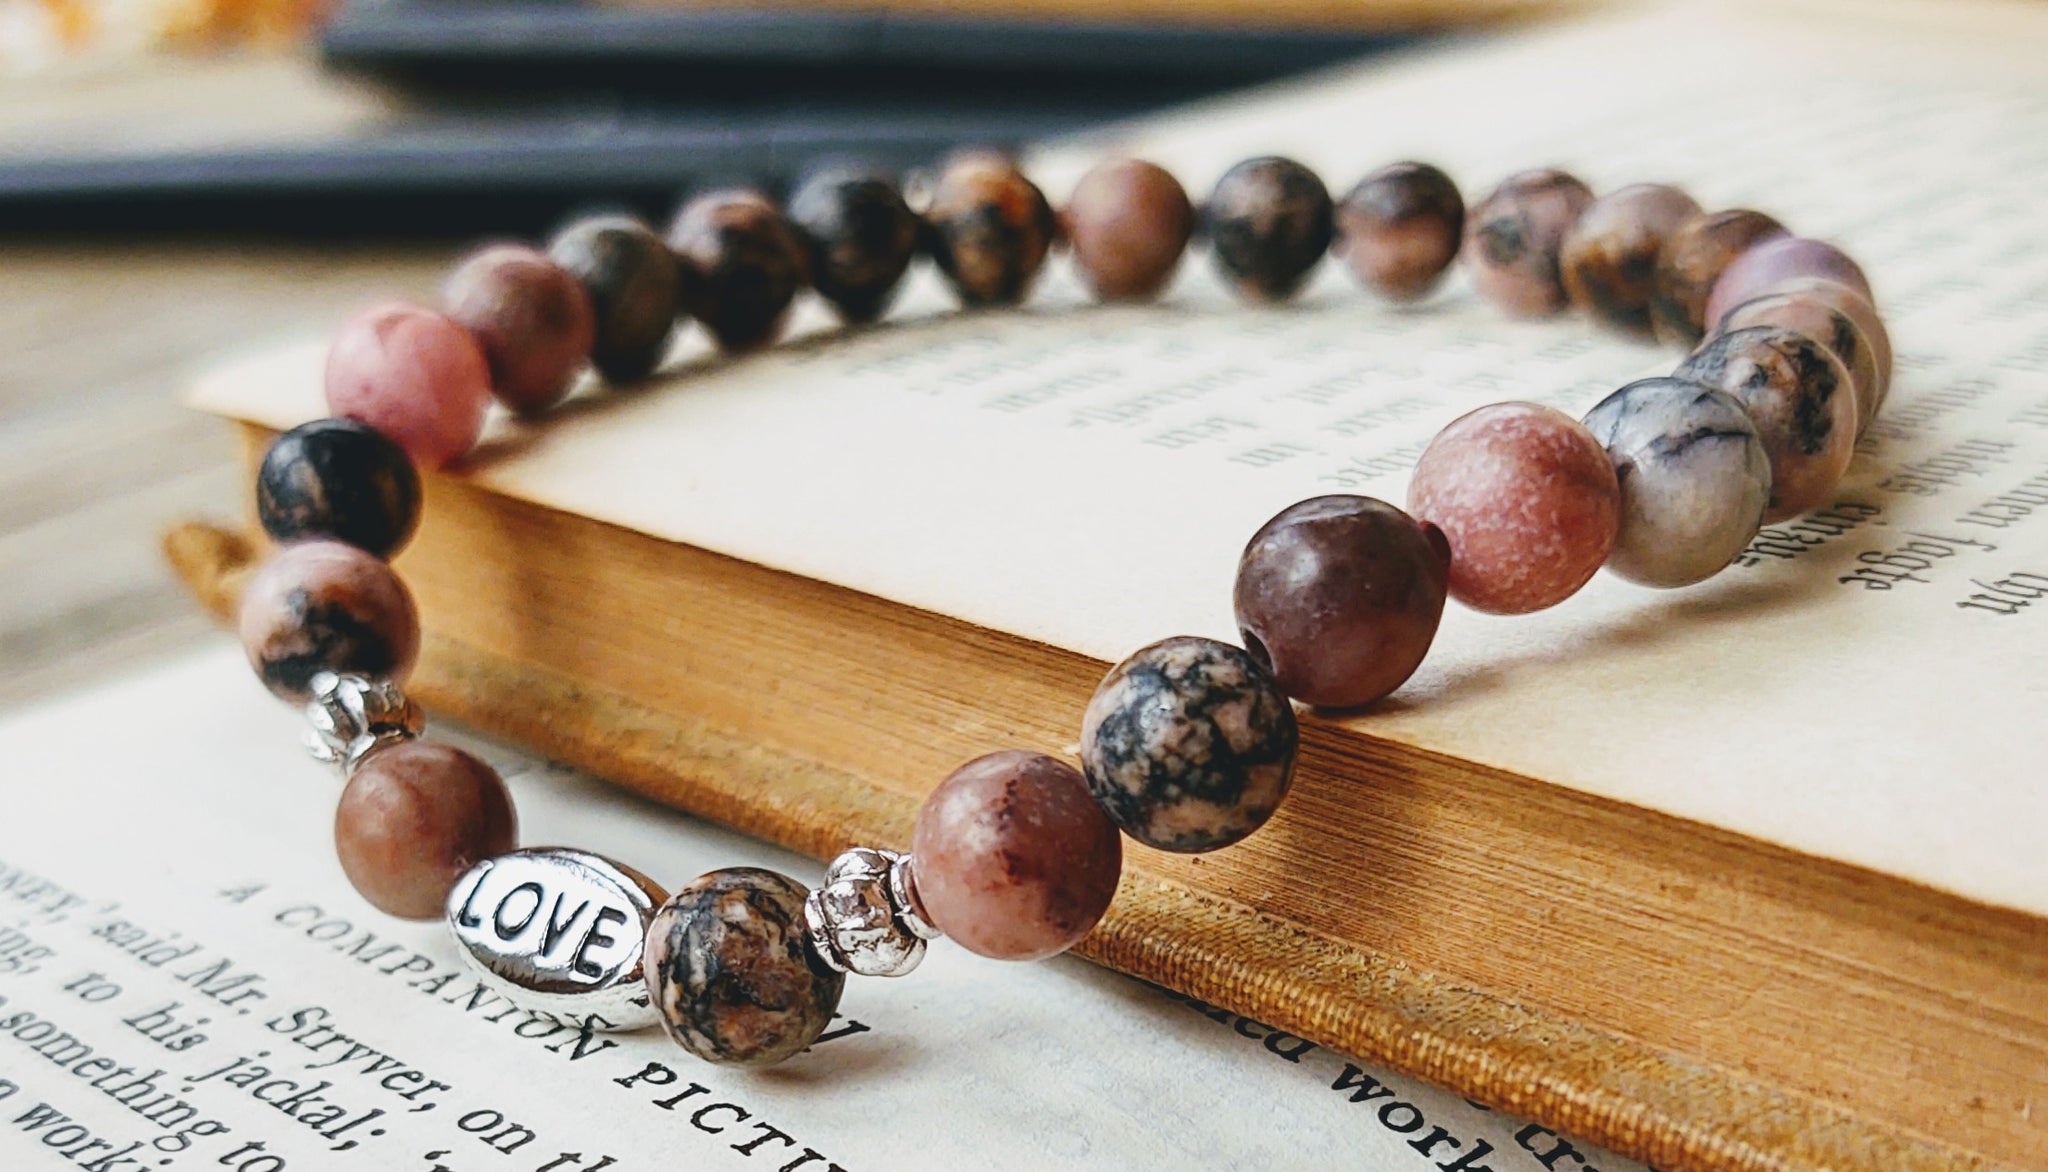 Love {Rhodonite} bracelet